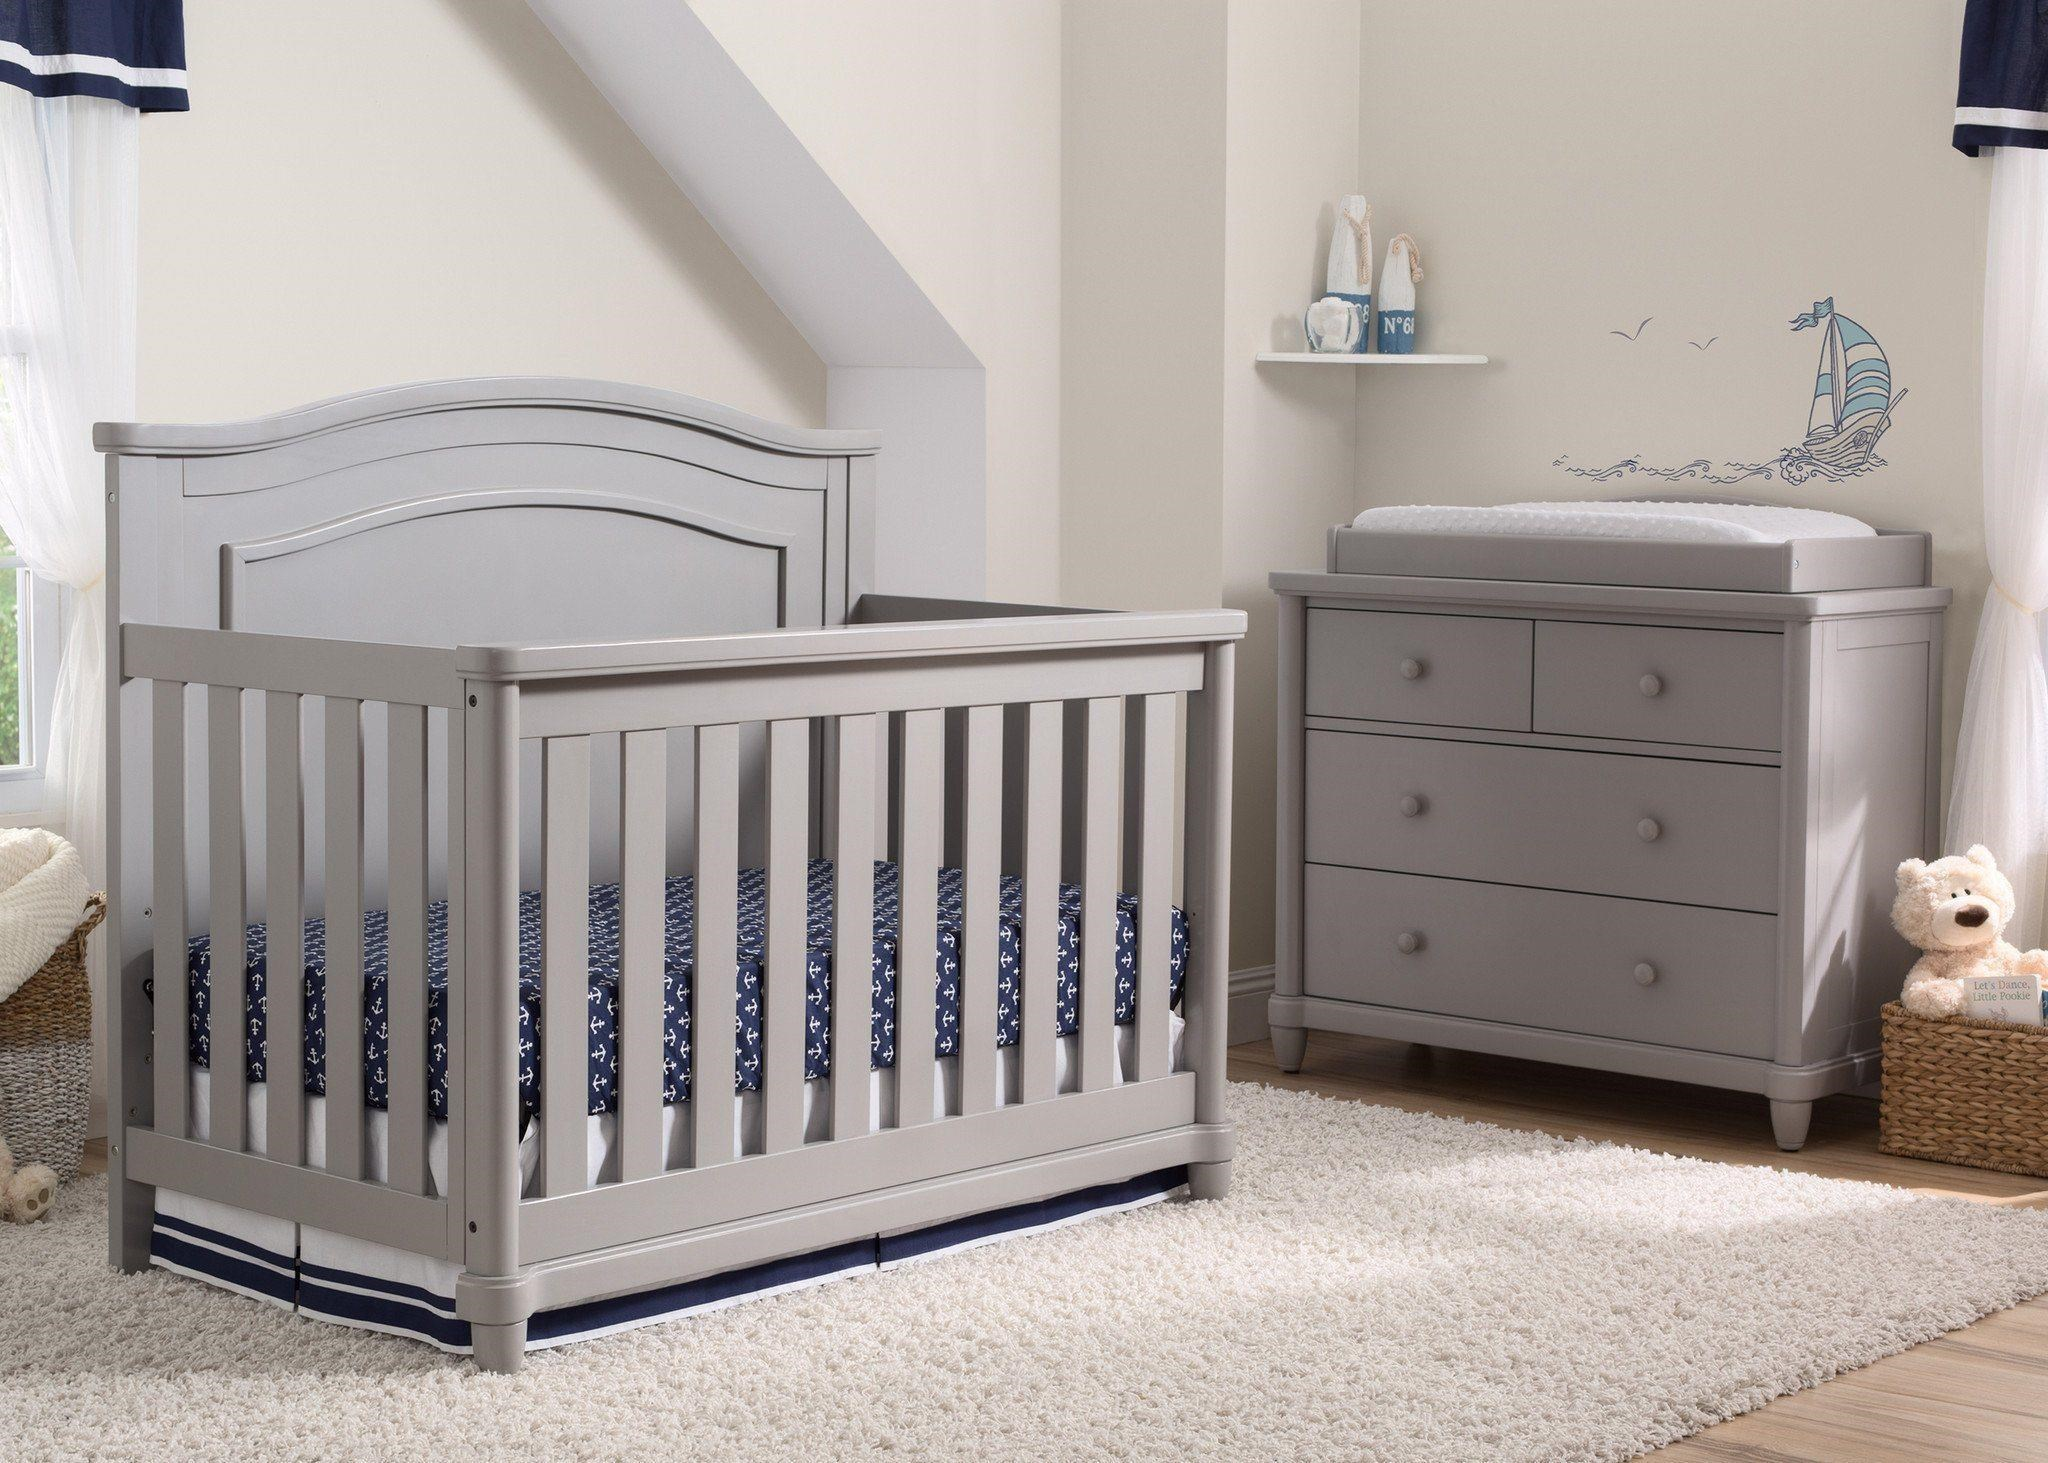 Merveilleux Delta Childrenu0027s Products Delta Cribs Brookside Dresser/Changing Table In  Grey   Item Number: